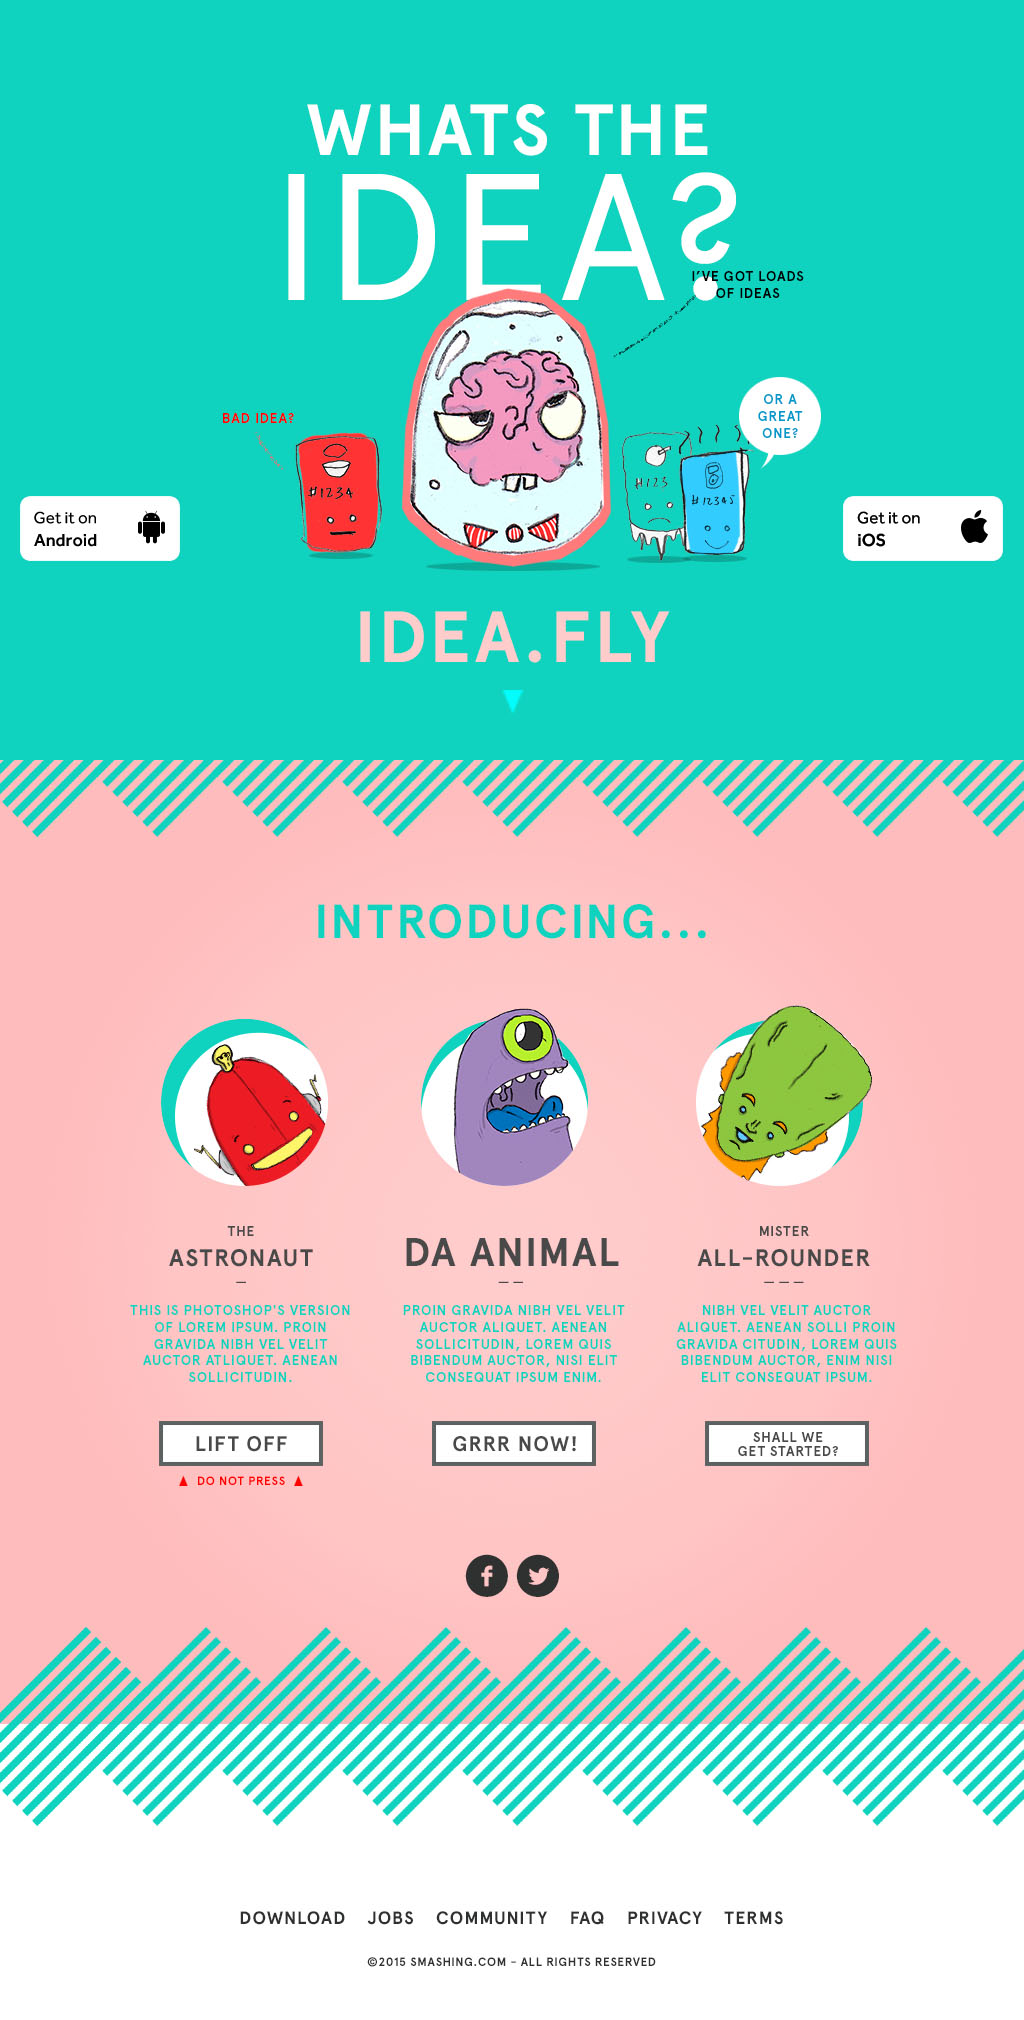 Ideas For Graphic Design Projects 17 best ideas about graphic design projects on pinterest fonts graphic design fonts and graphic design portfolios Ideafly_characters_01 1 Graphic Design Ideas